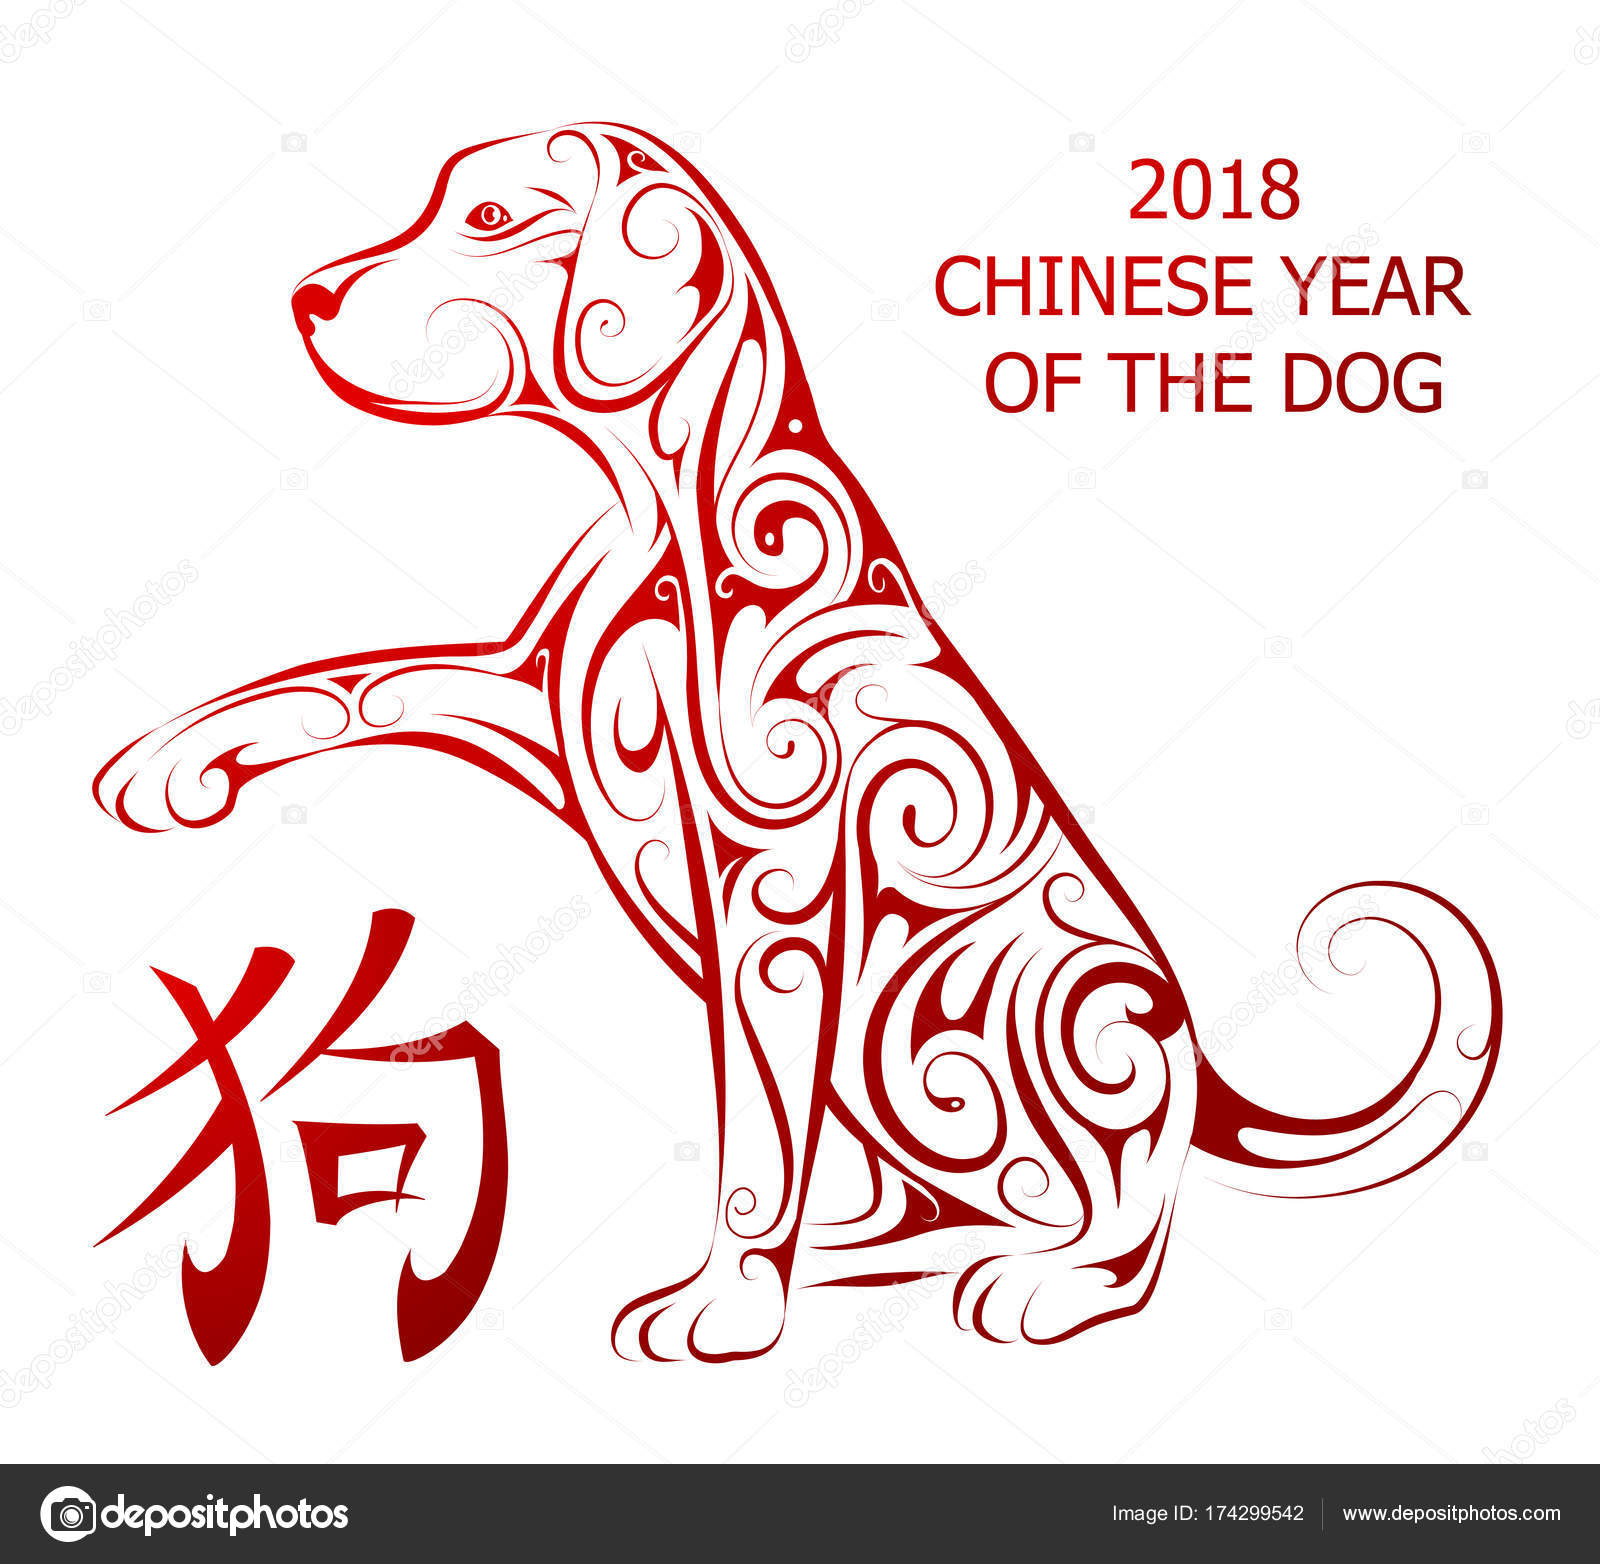 Dog as symbol chinese new year 2018 stock vector akvlv 174299542 dog as symbol chinese new year 2018 stock vector buycottarizona Gallery